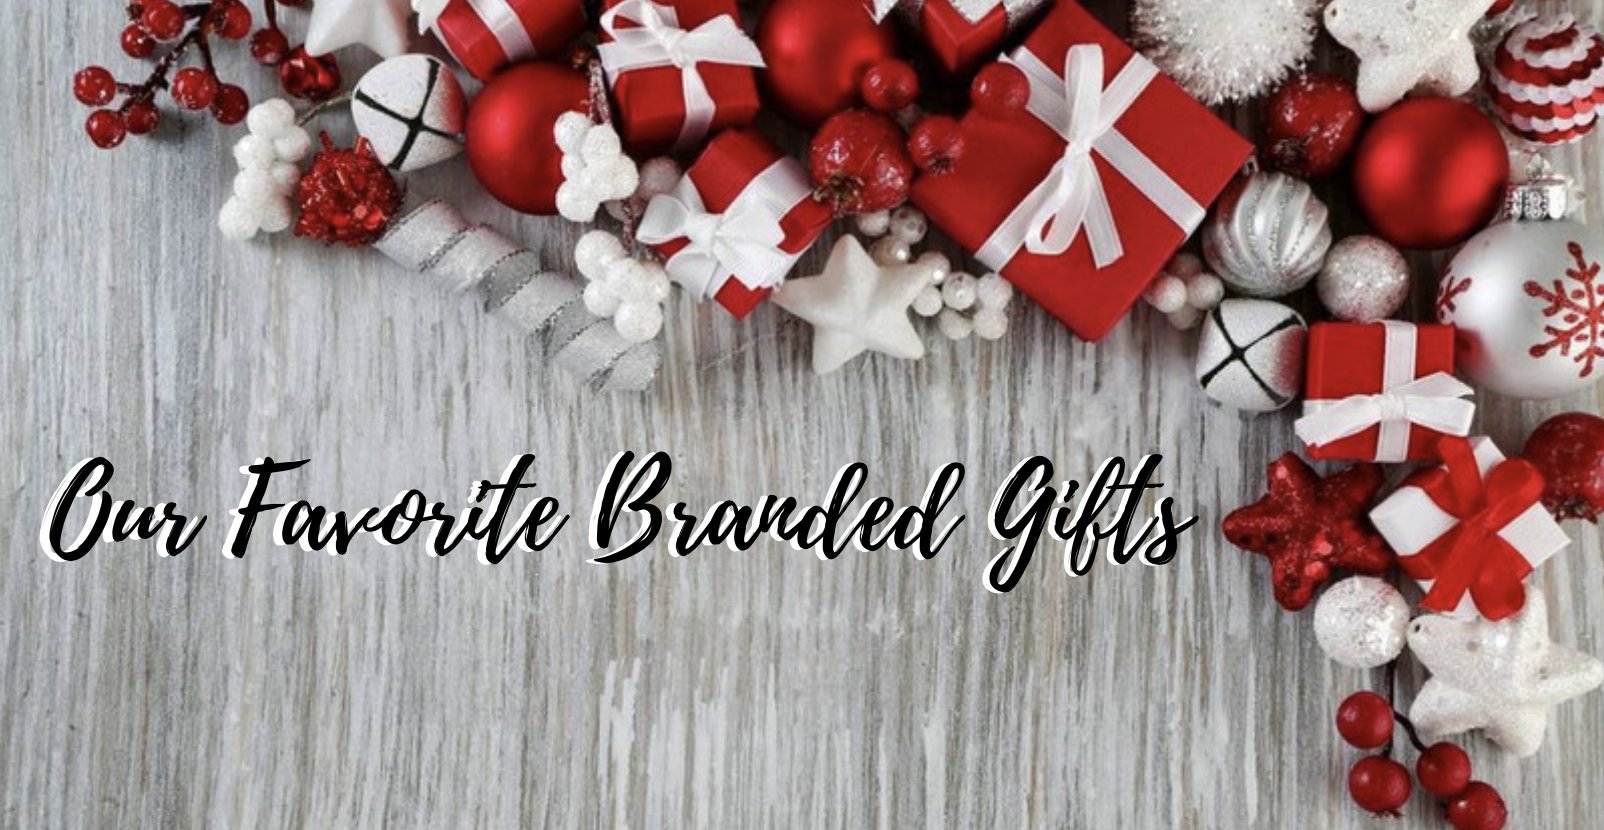 Branded Gifts Blog